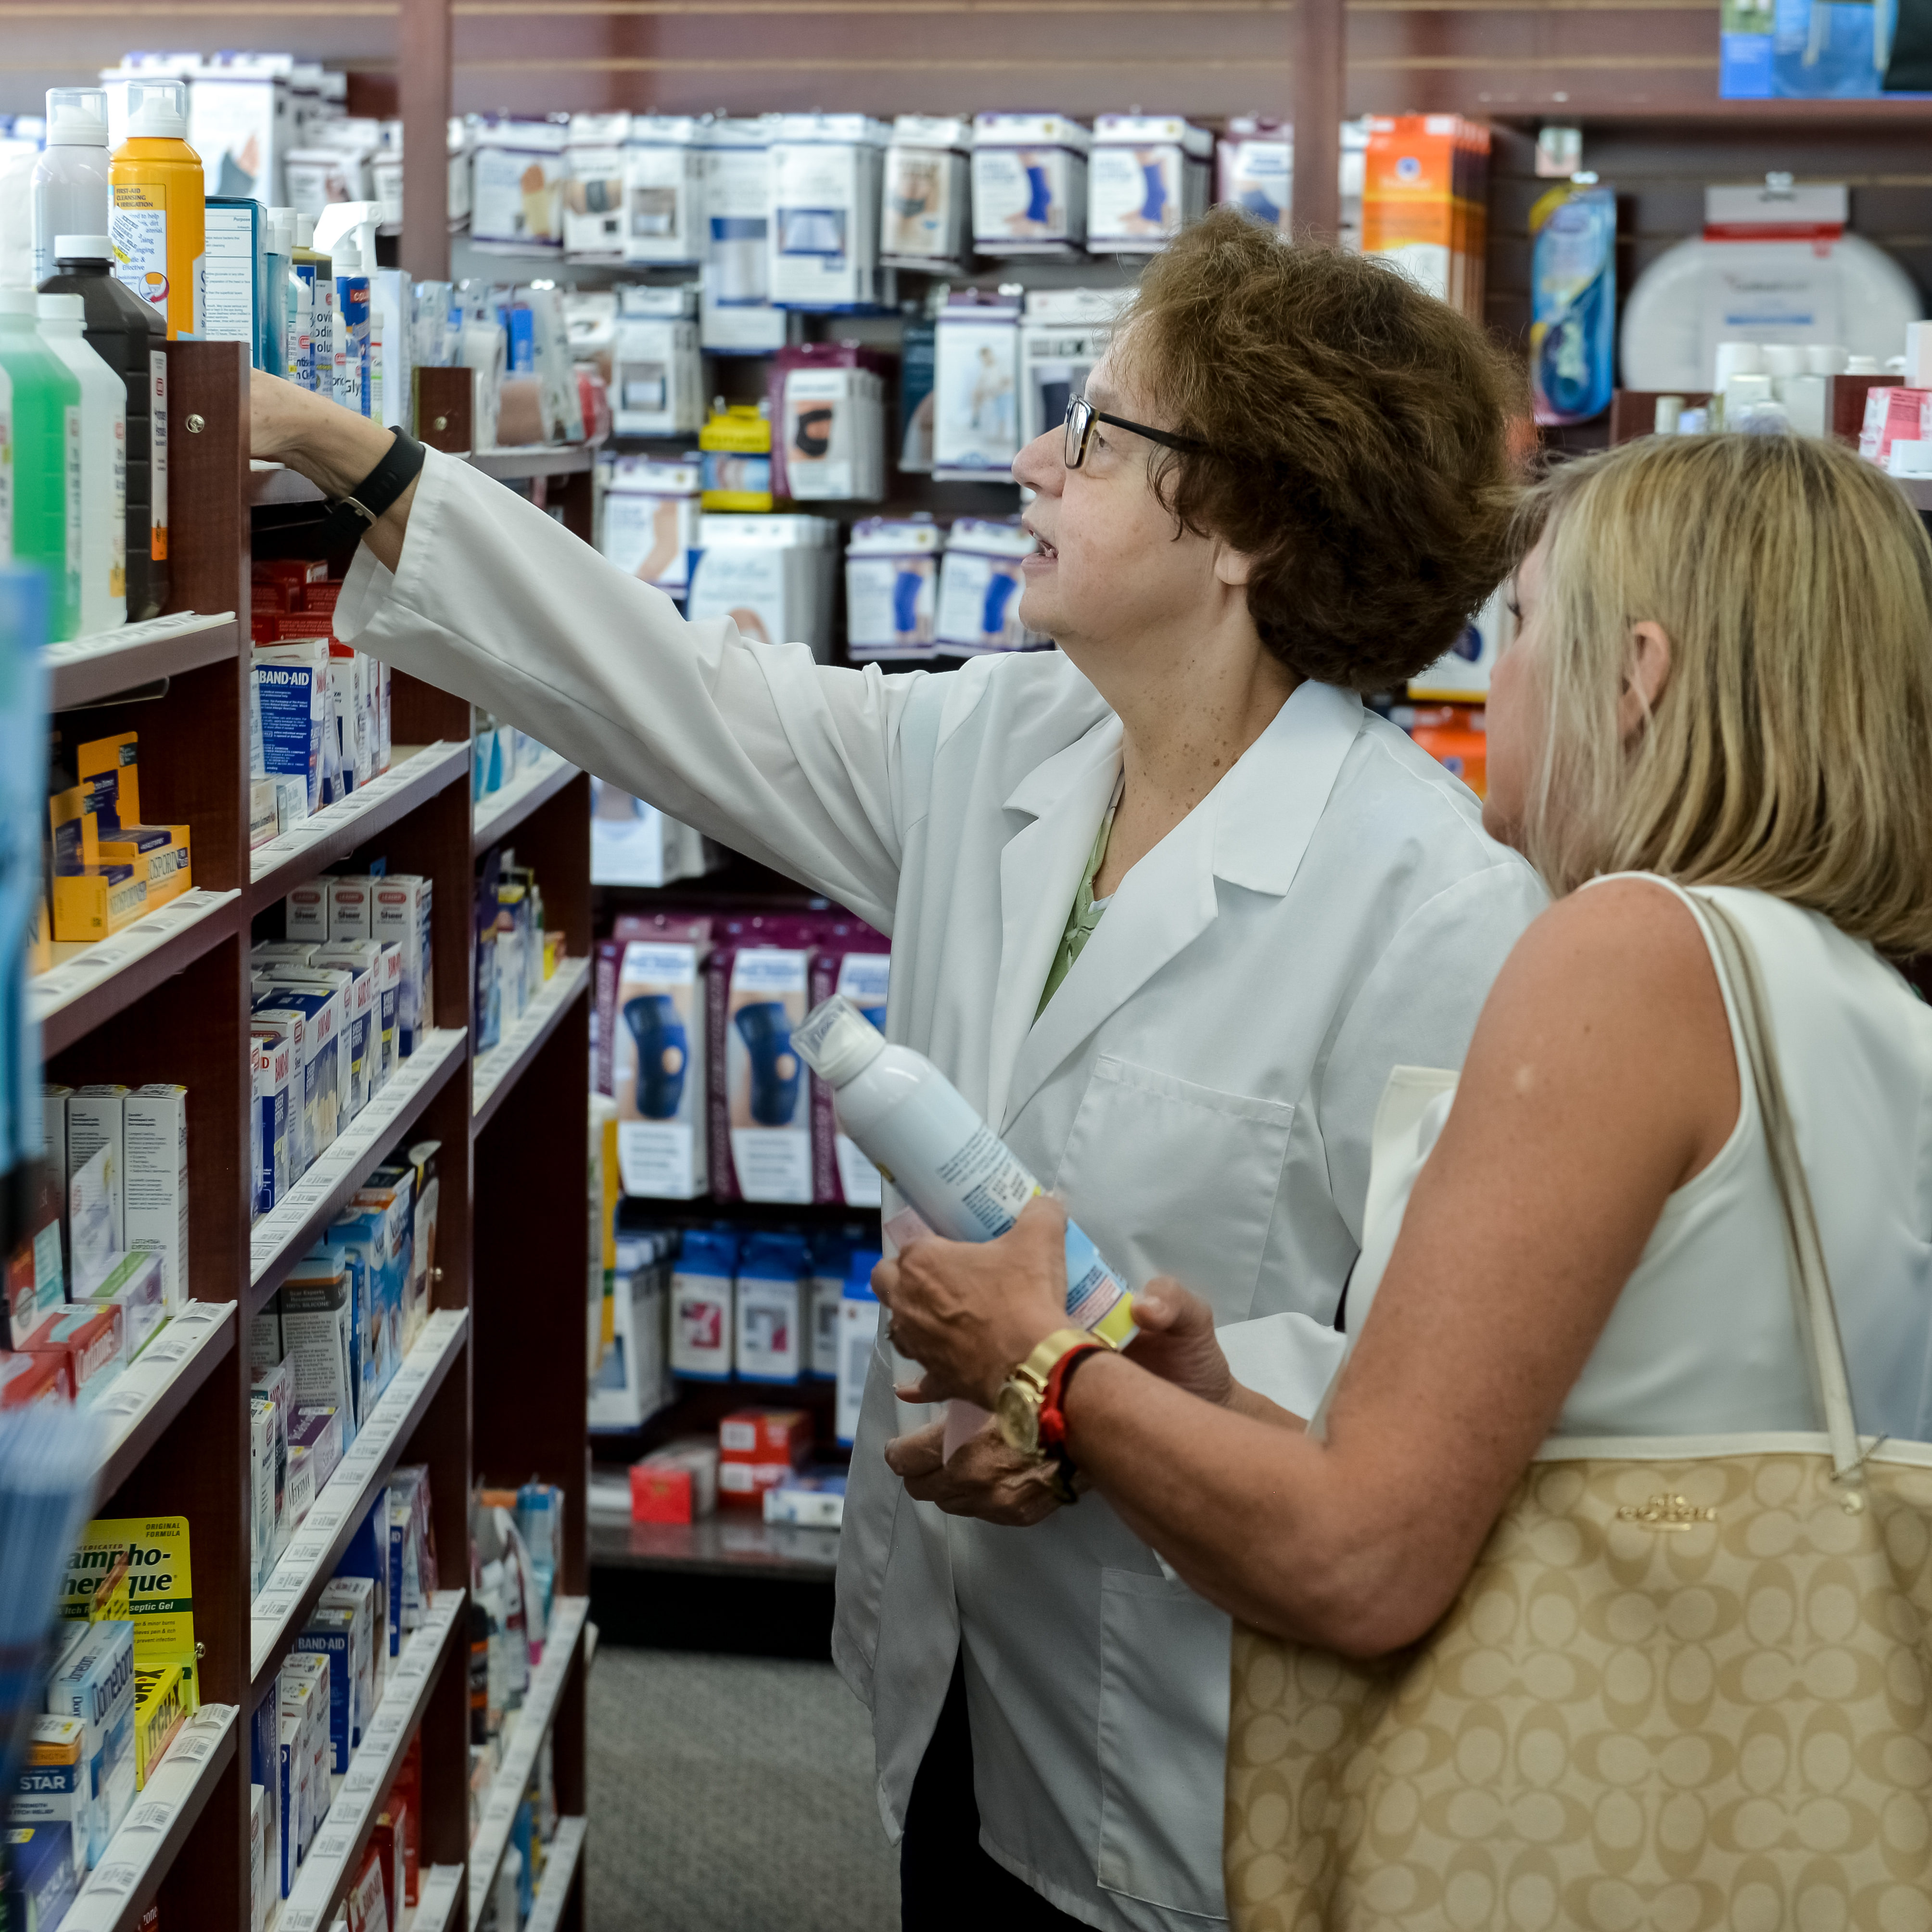 Keyes Drug pharmacist assisting customer in selecting medical product.